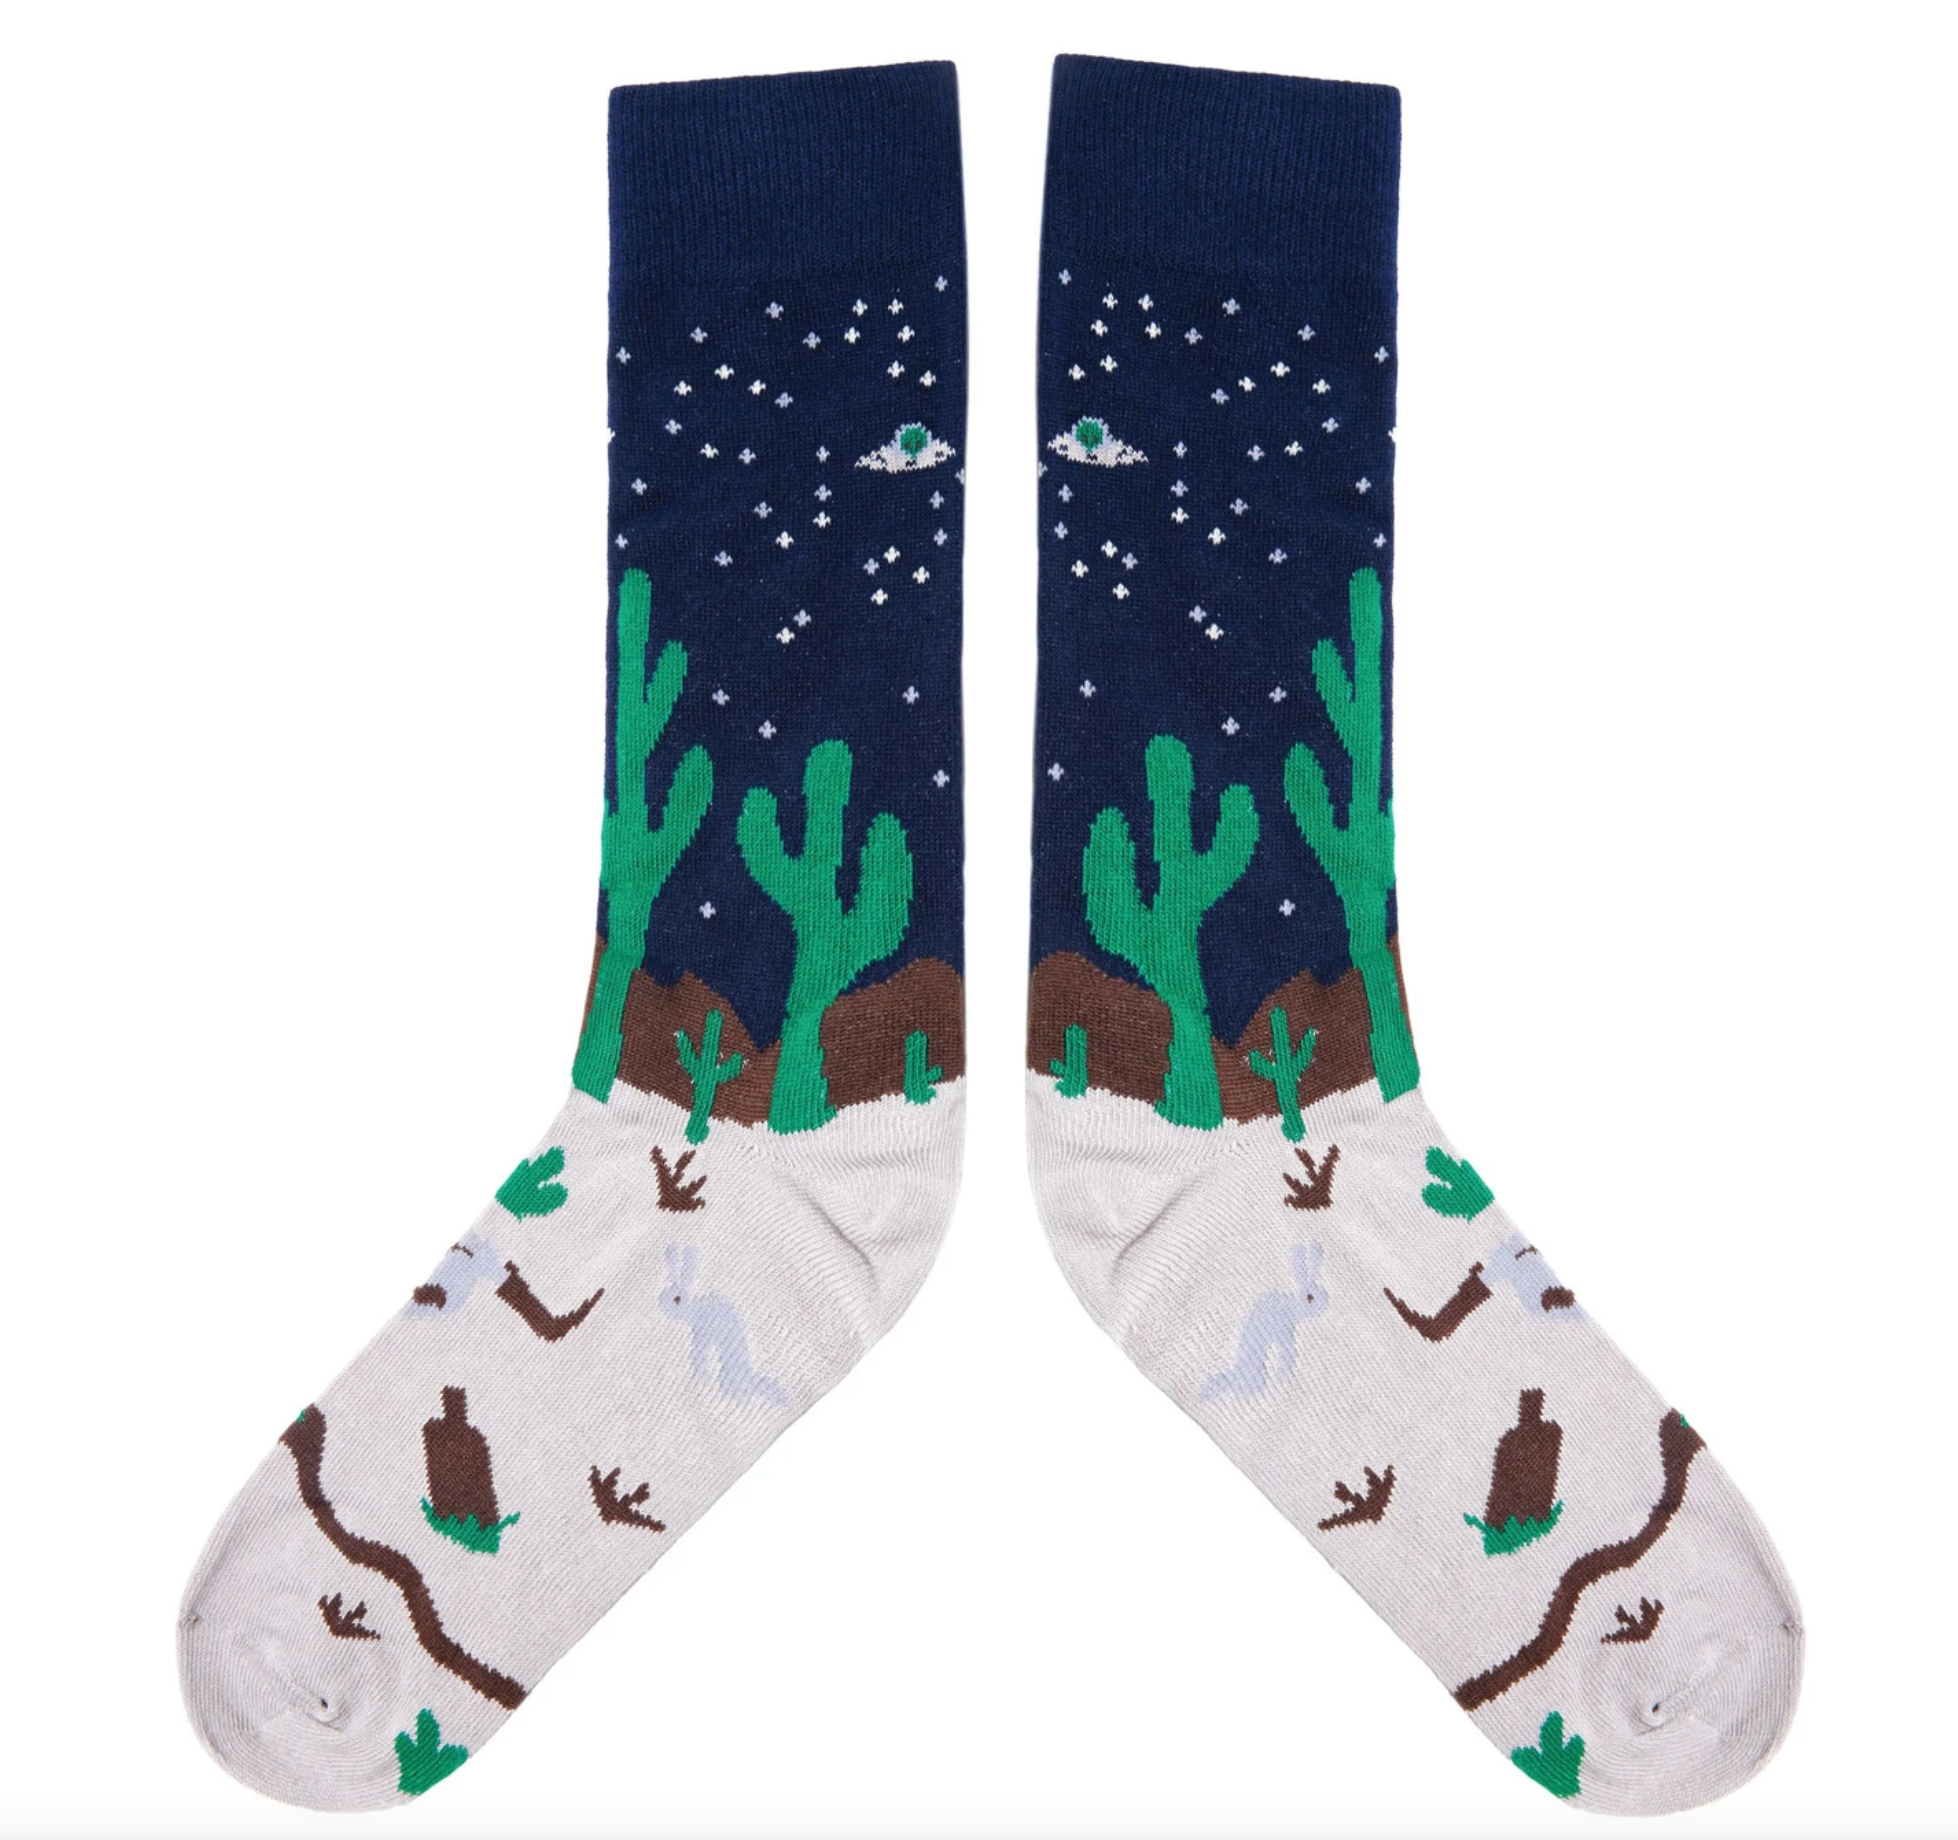 The Ampal Creative - Midnight Desert Socks - One Size